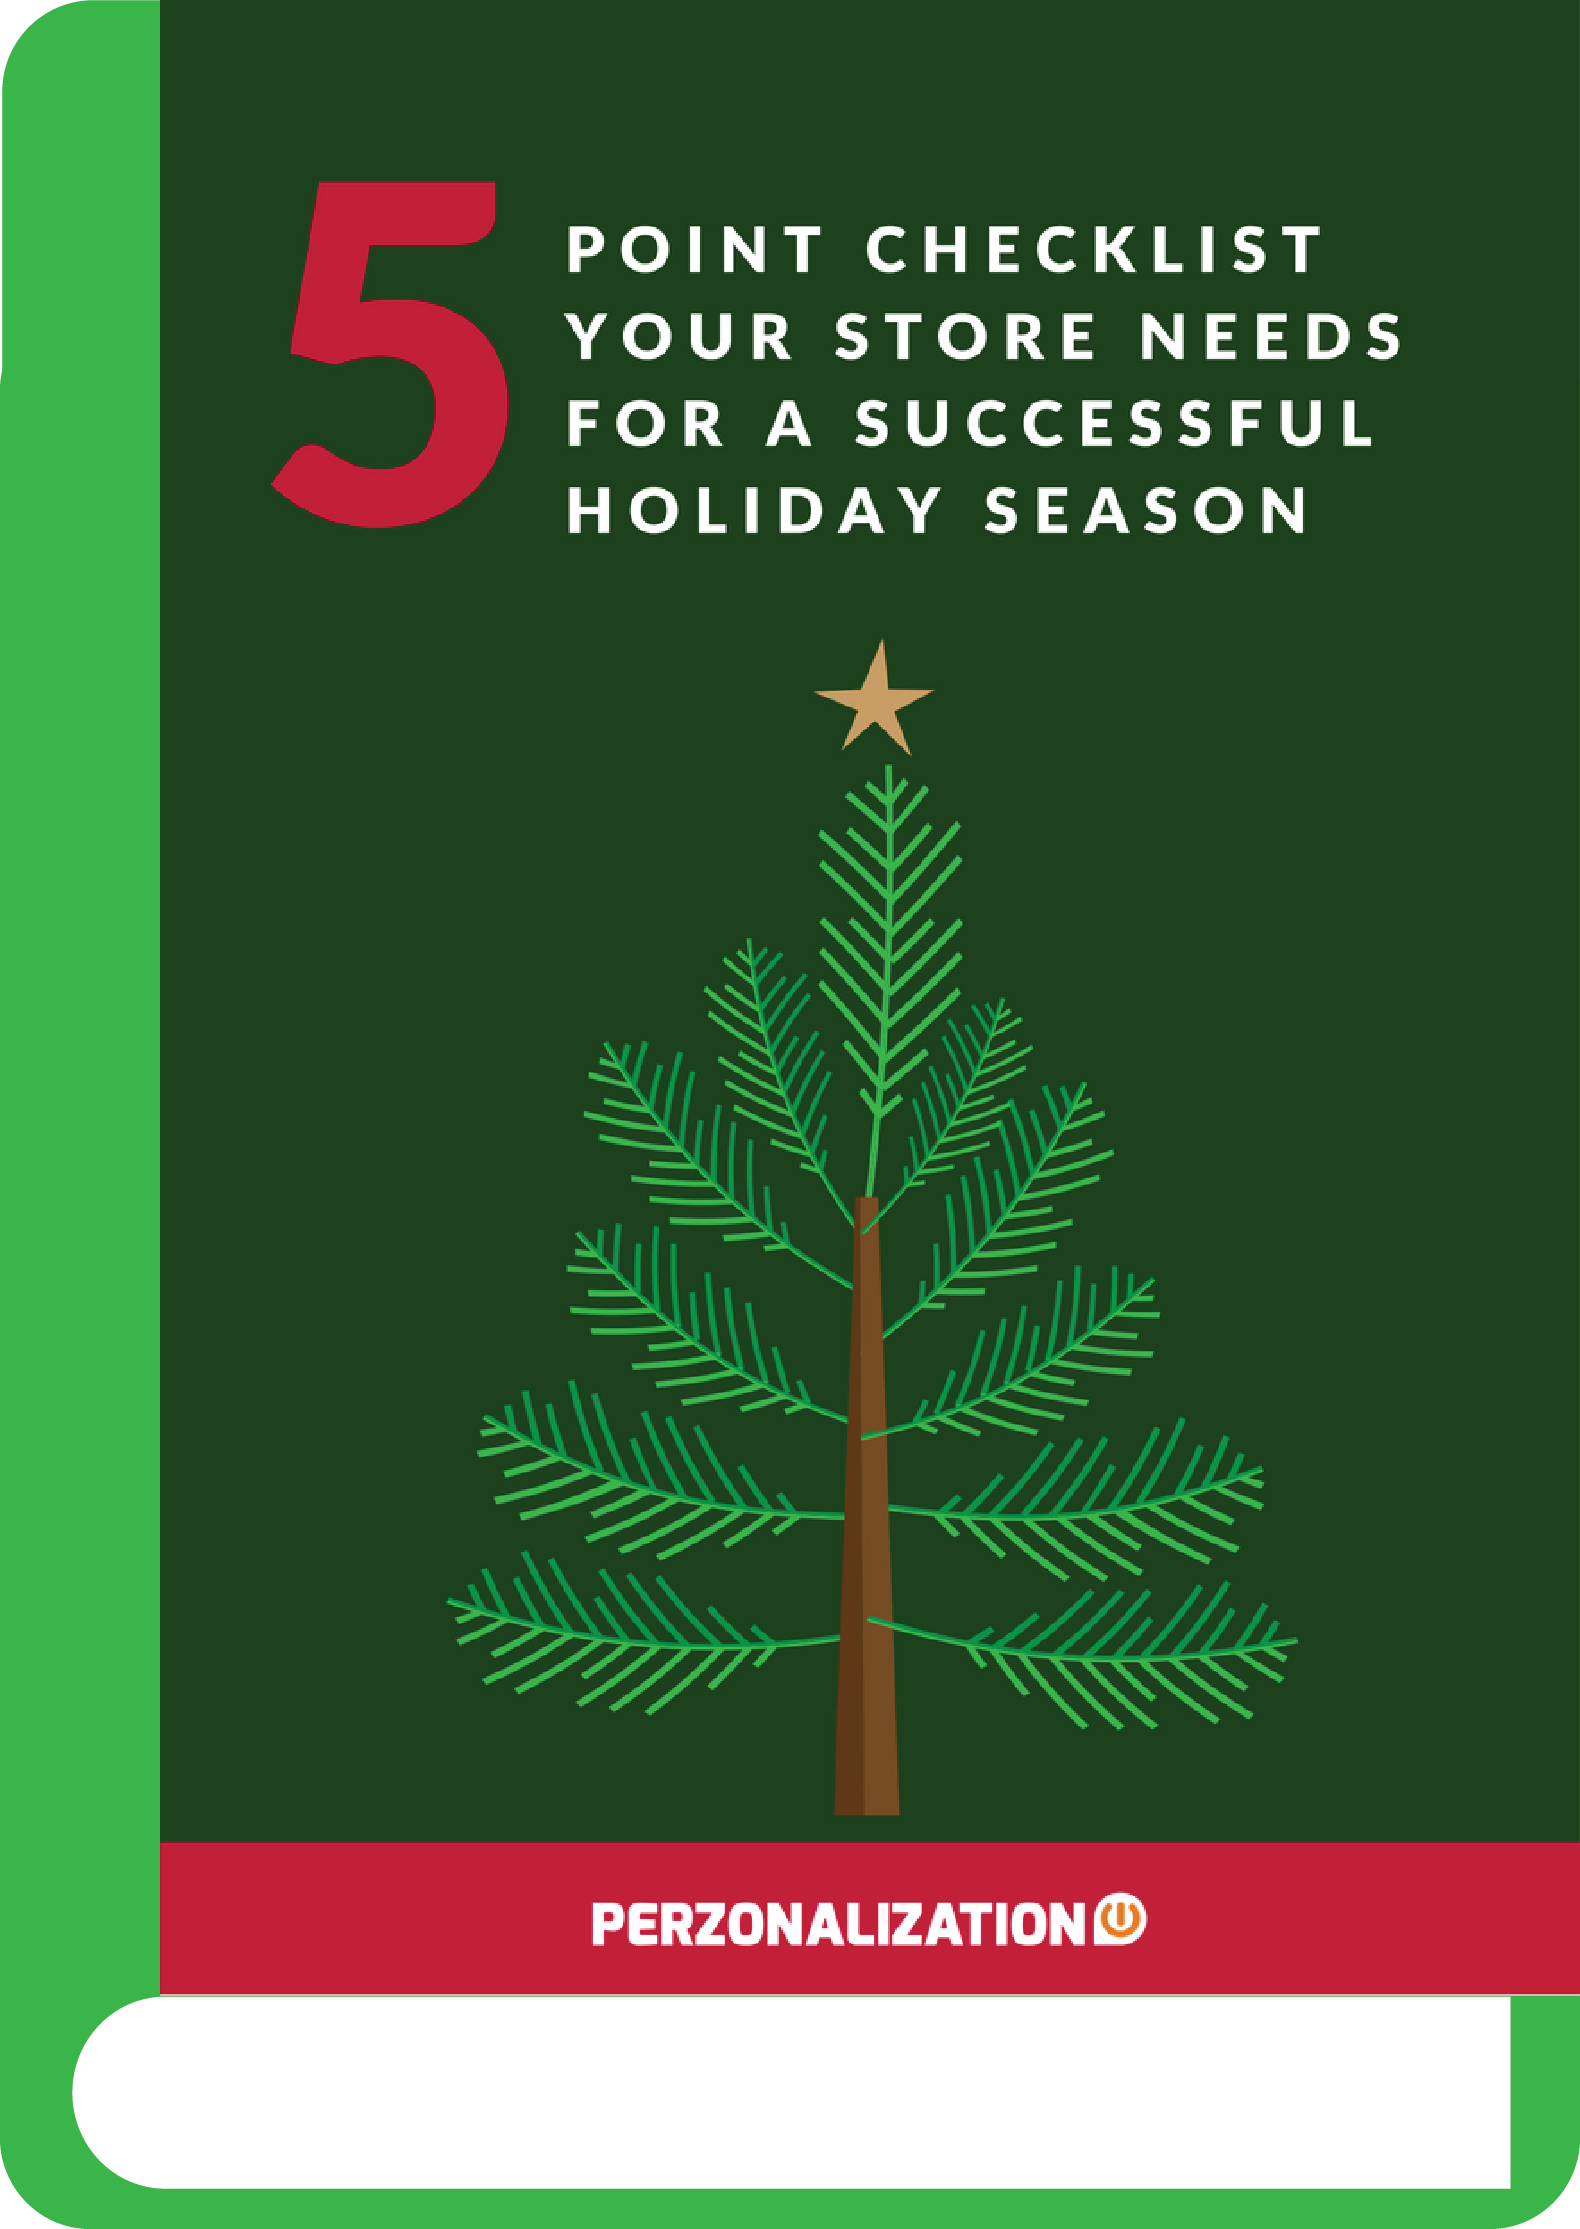 If you're thinking about developing a complete eCommerce marketing plan for your store this Holiday Season, use these tips we mentioned in this eBook!